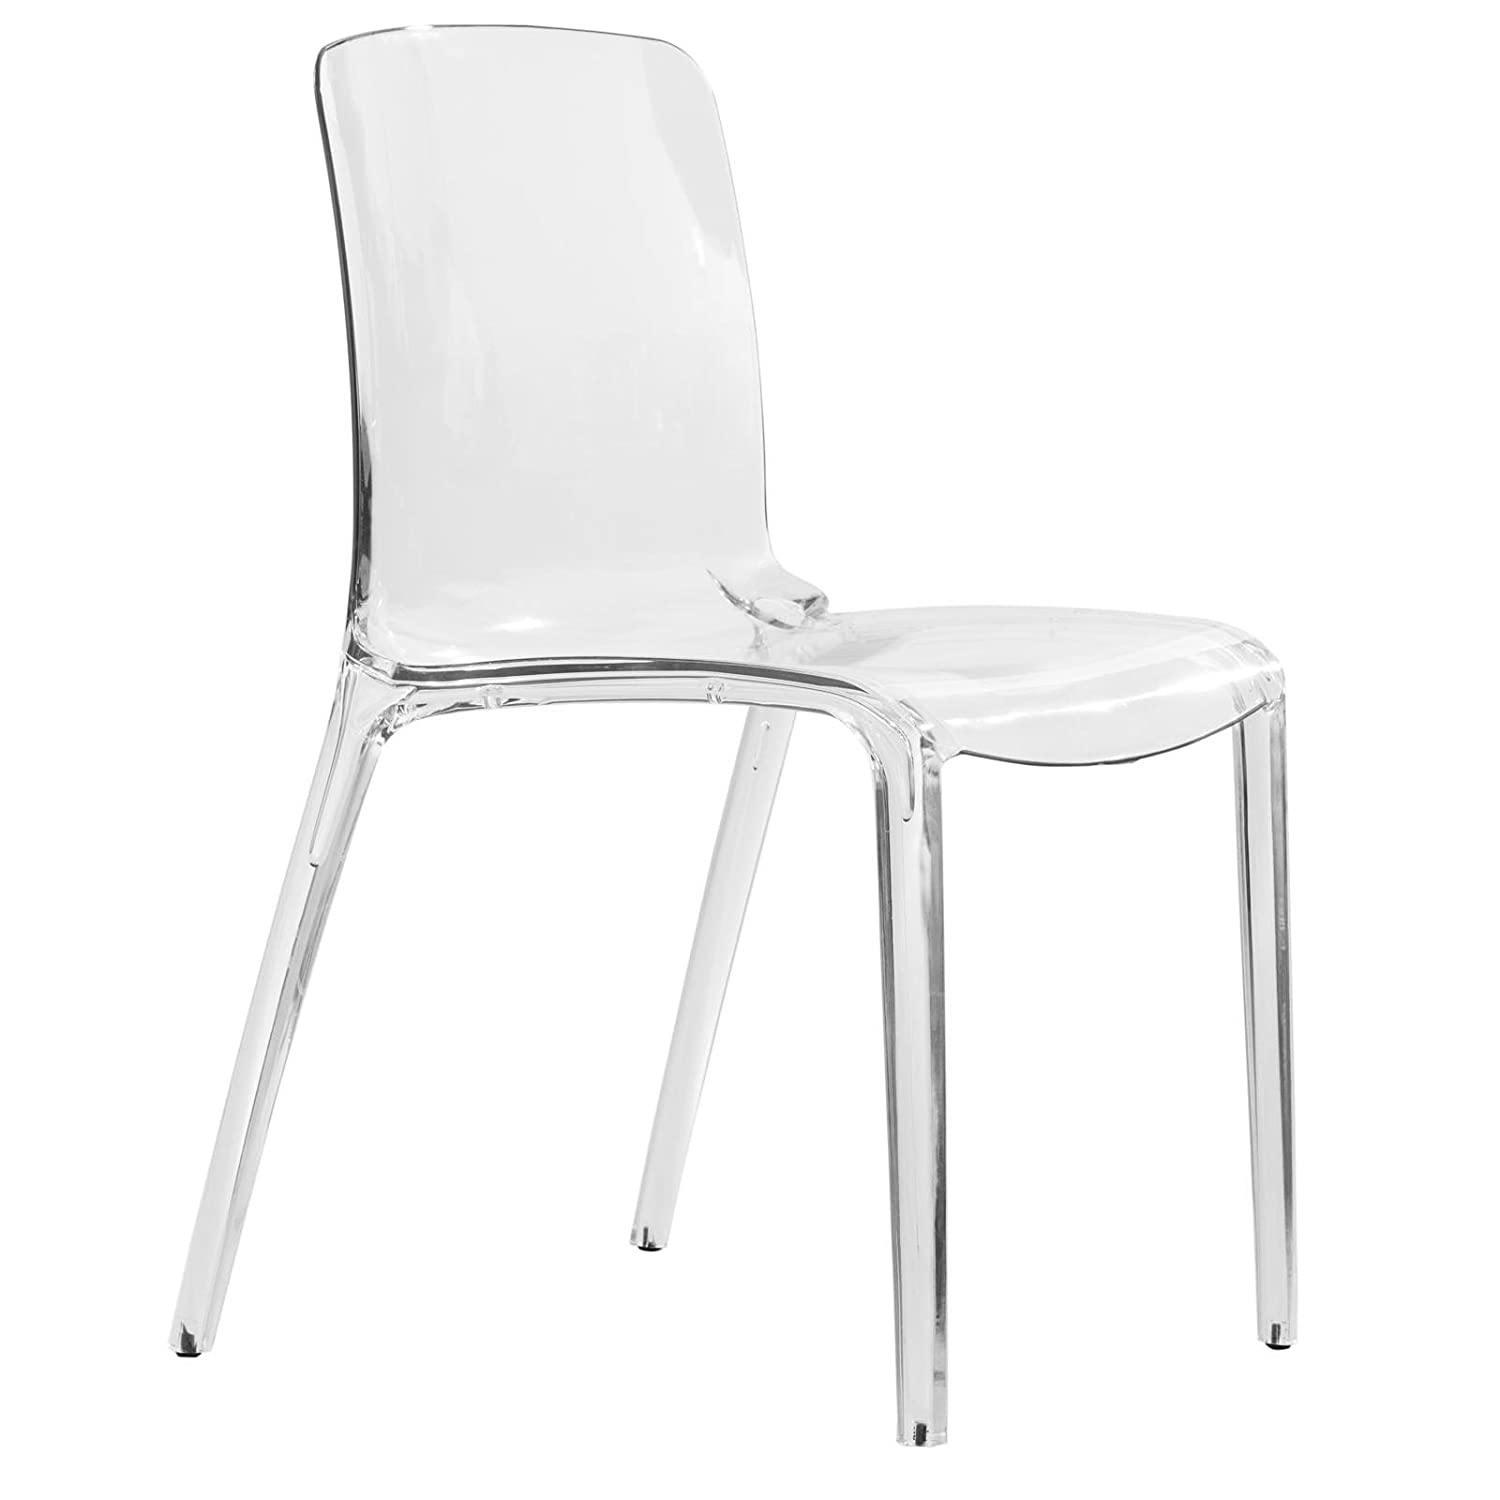 sc 1 st  Amazon.com & Amazon.com - LeisureMod Murray Modern Dining Chair Clear - Chairs